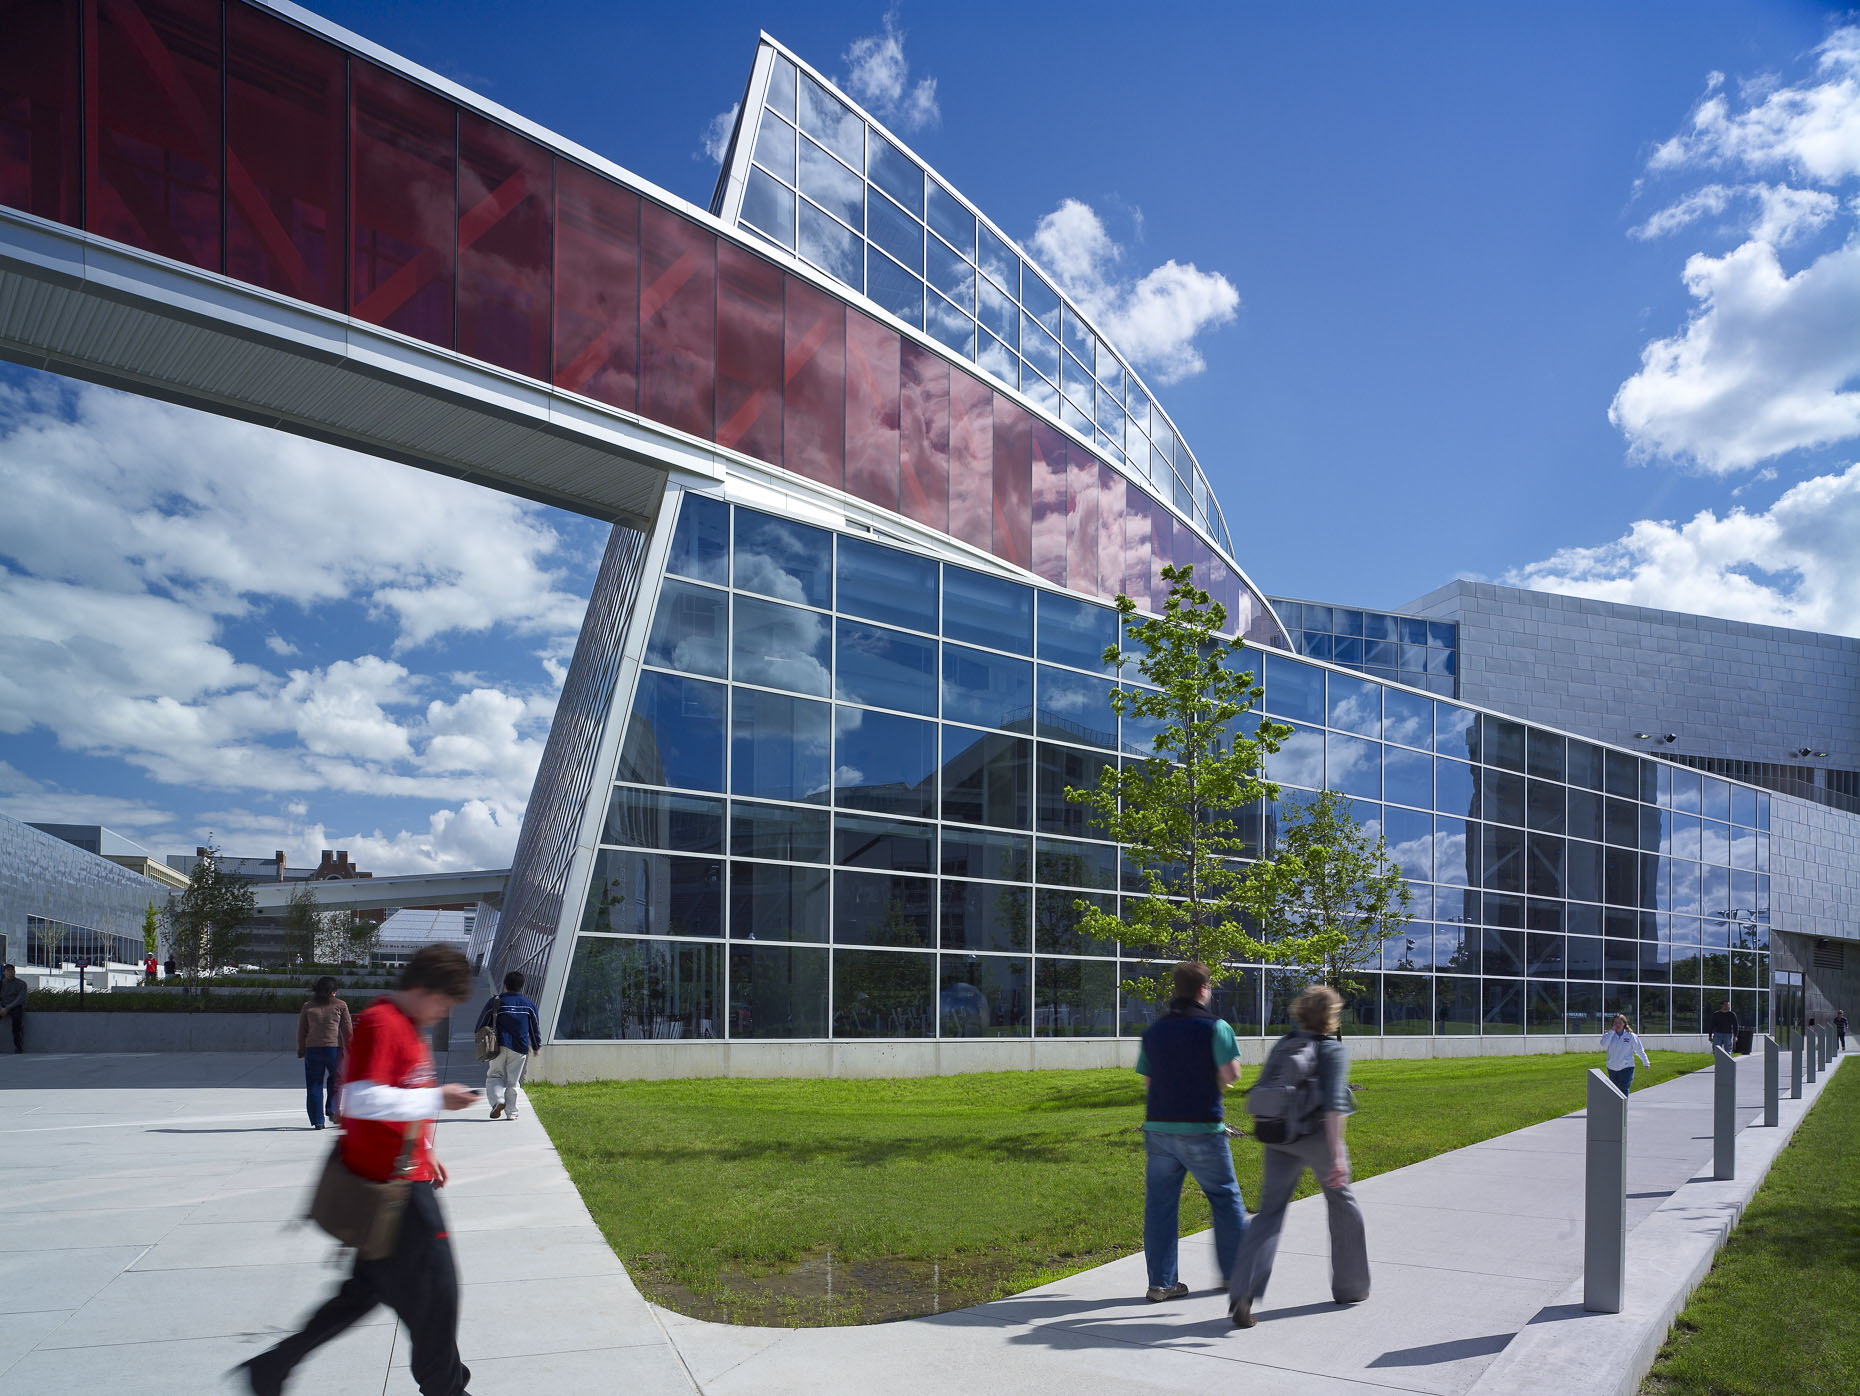 OSU RPAC by Antoine Predock & Acock Associates Architects photographed by Brad Feinknopf based in Columbus, Ohio